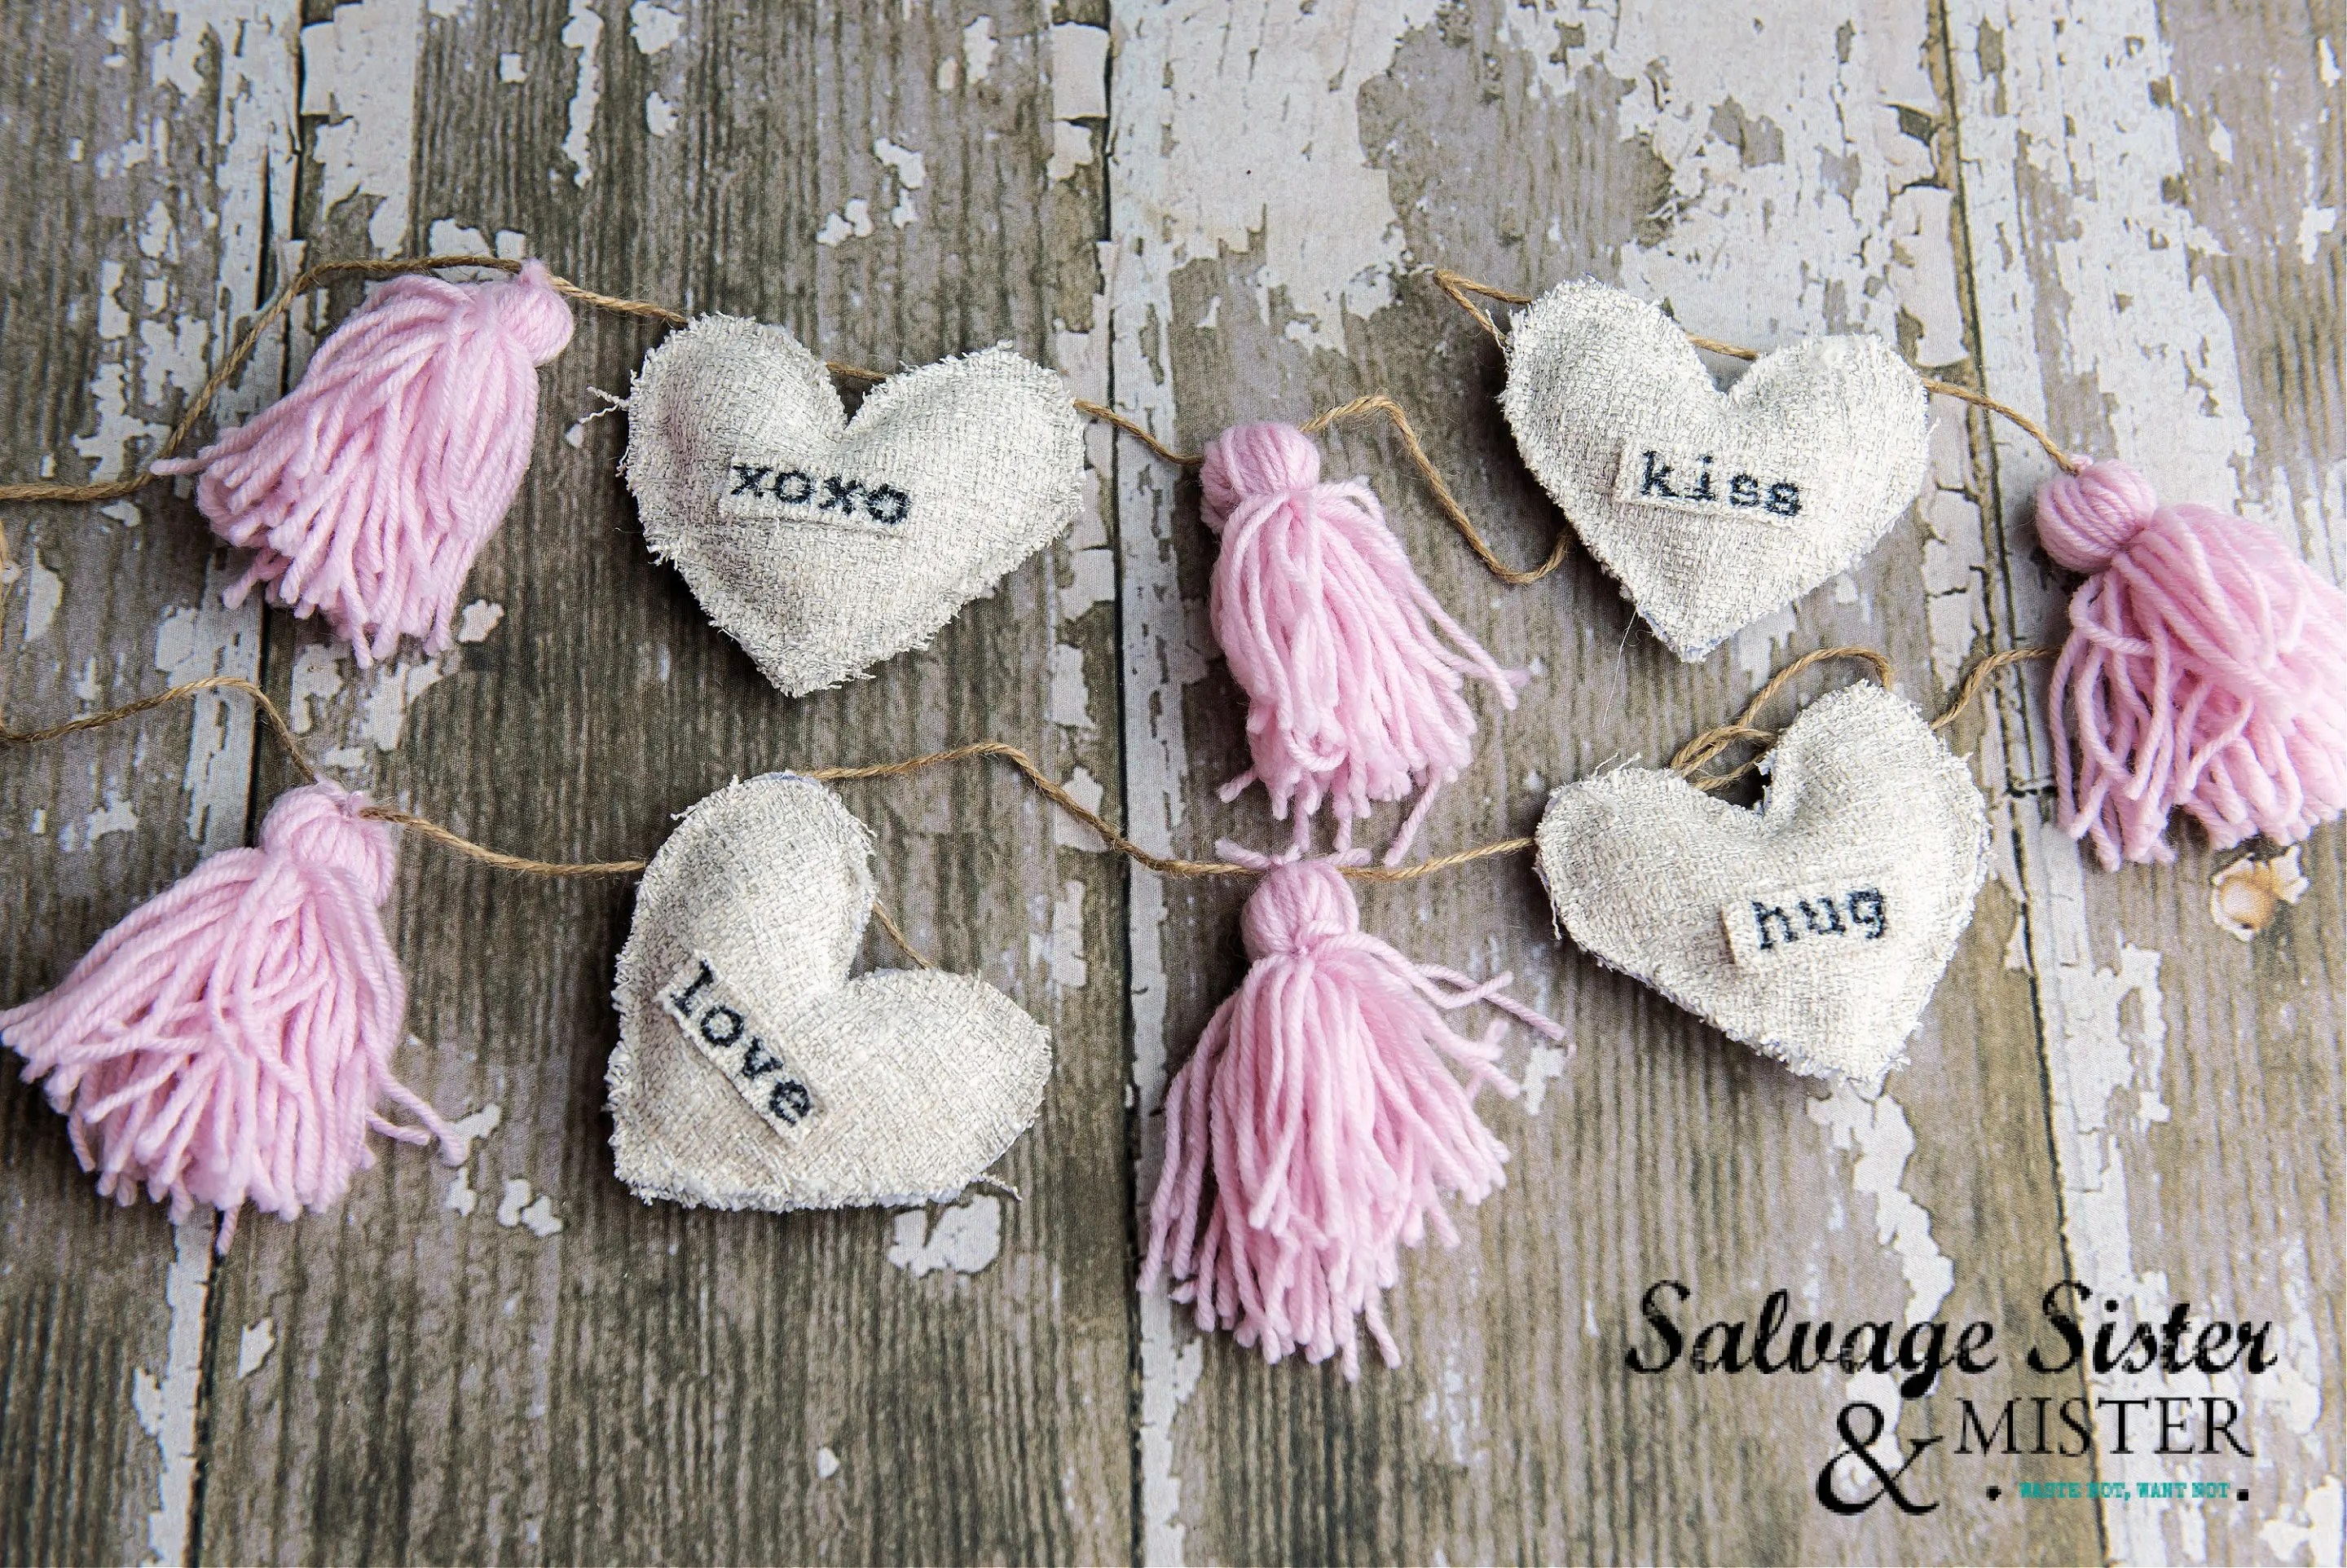 A completed section of a farmhouse style garland for Valentine's day decor.